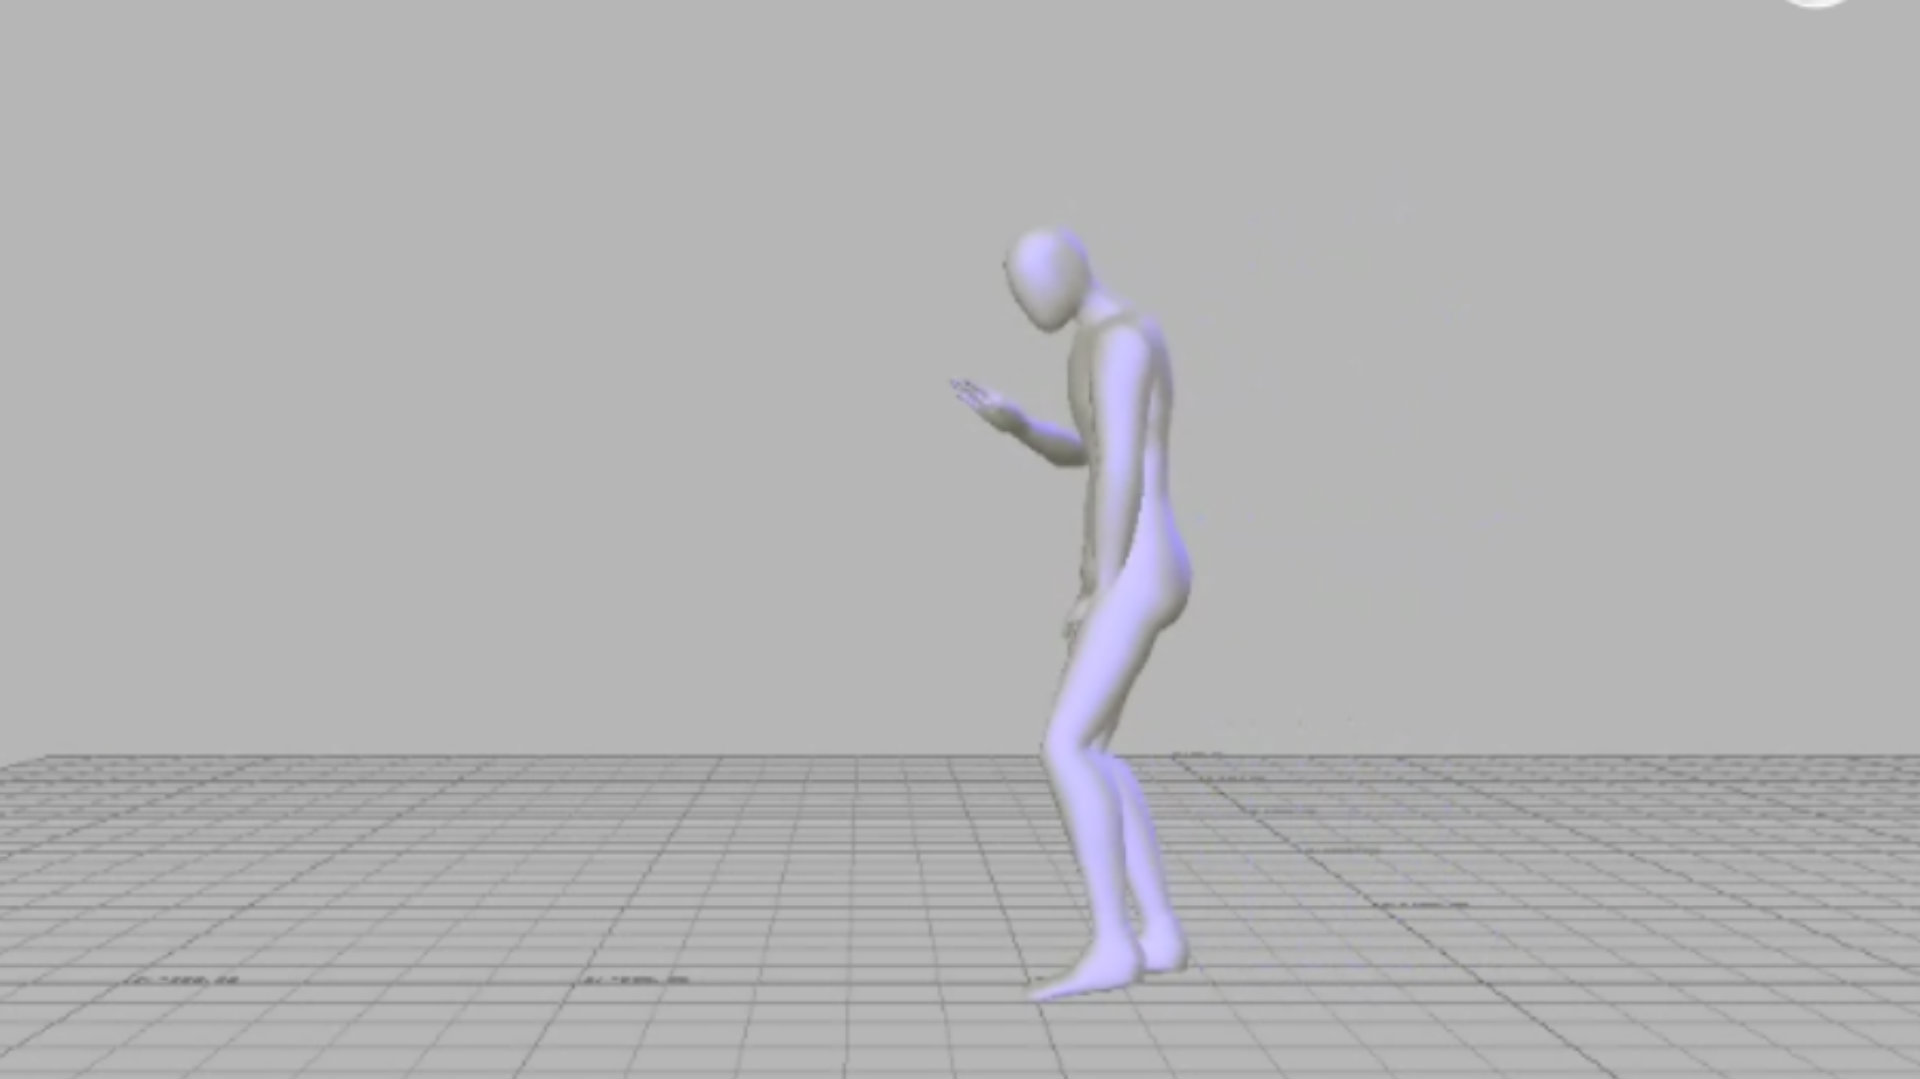 Scientists have discovered the exact dance movements that catch a woman's eye